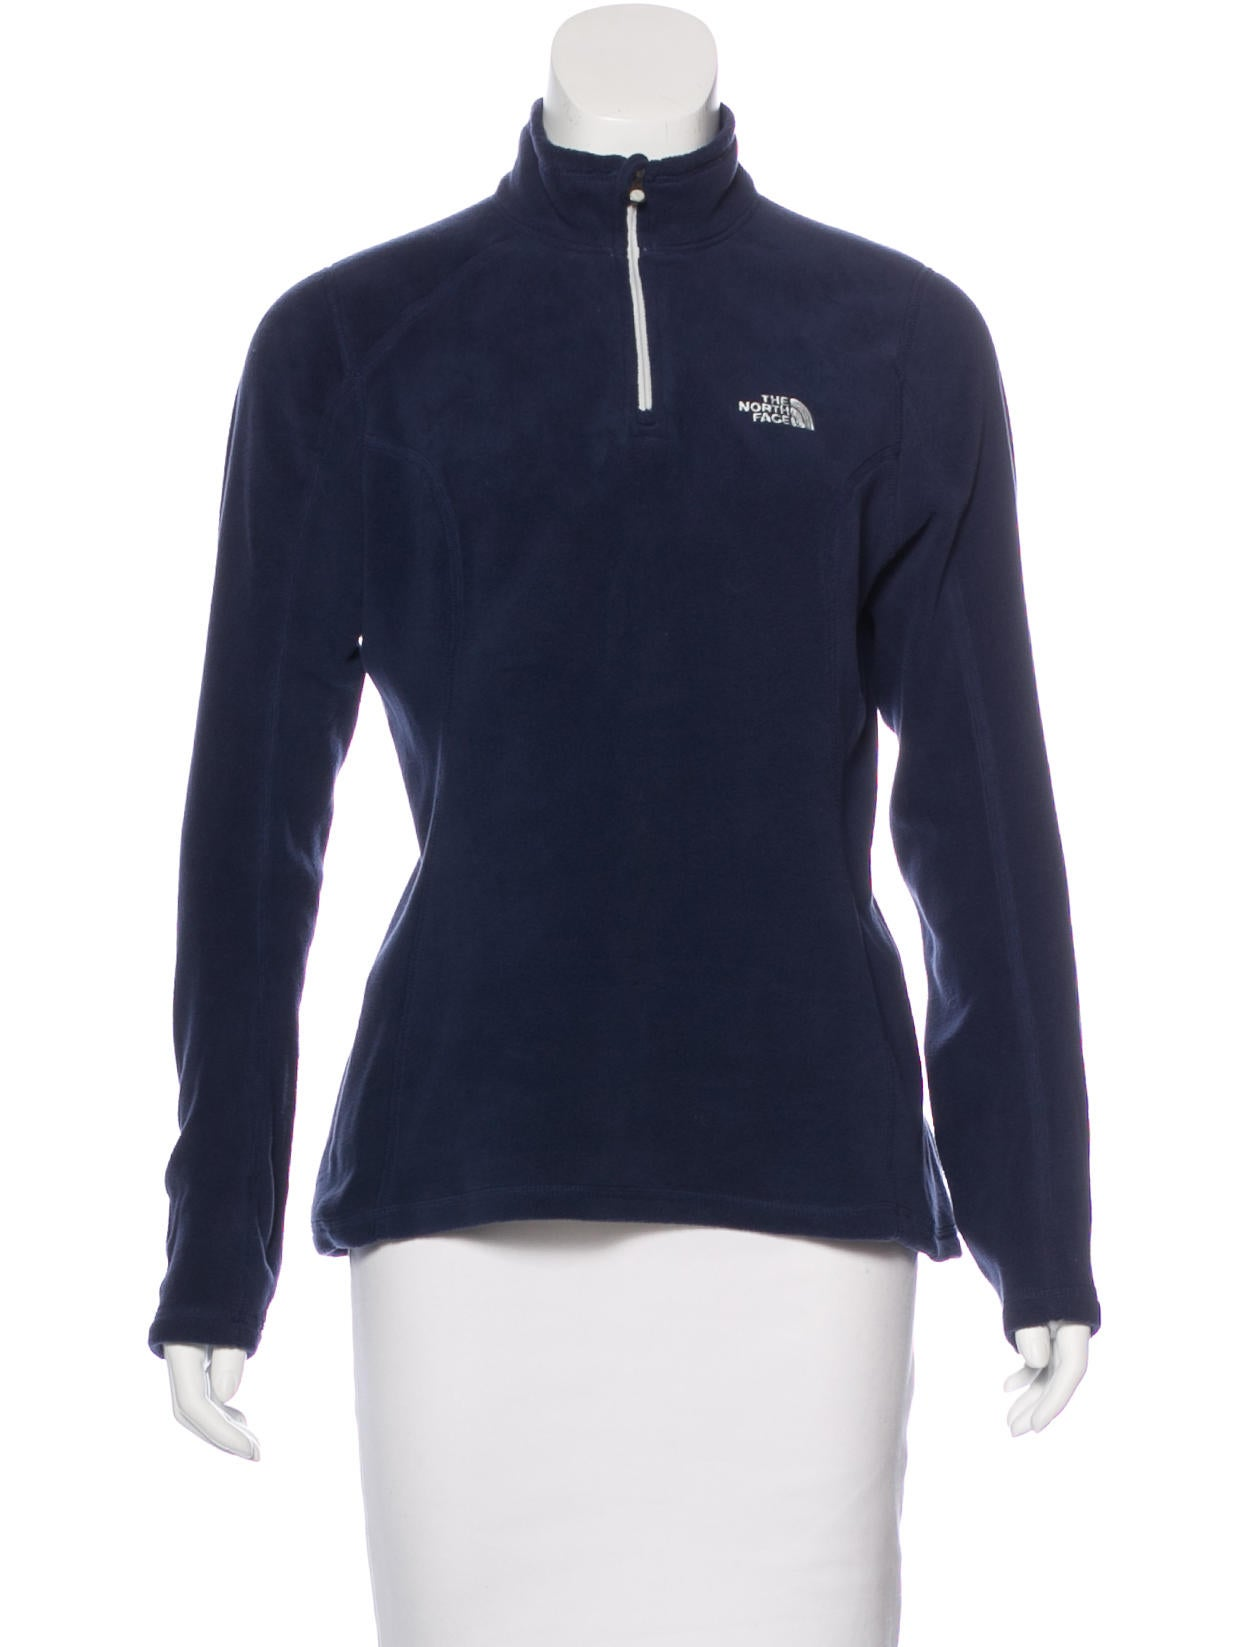 Keep toasty with the help of a fleece sweater or shirt—perfect for running errands on the town or logging miles during your morning run. Women's fleece jackets and sweaters with brushed interiors feel soft and comfortable when the weather is chilly.